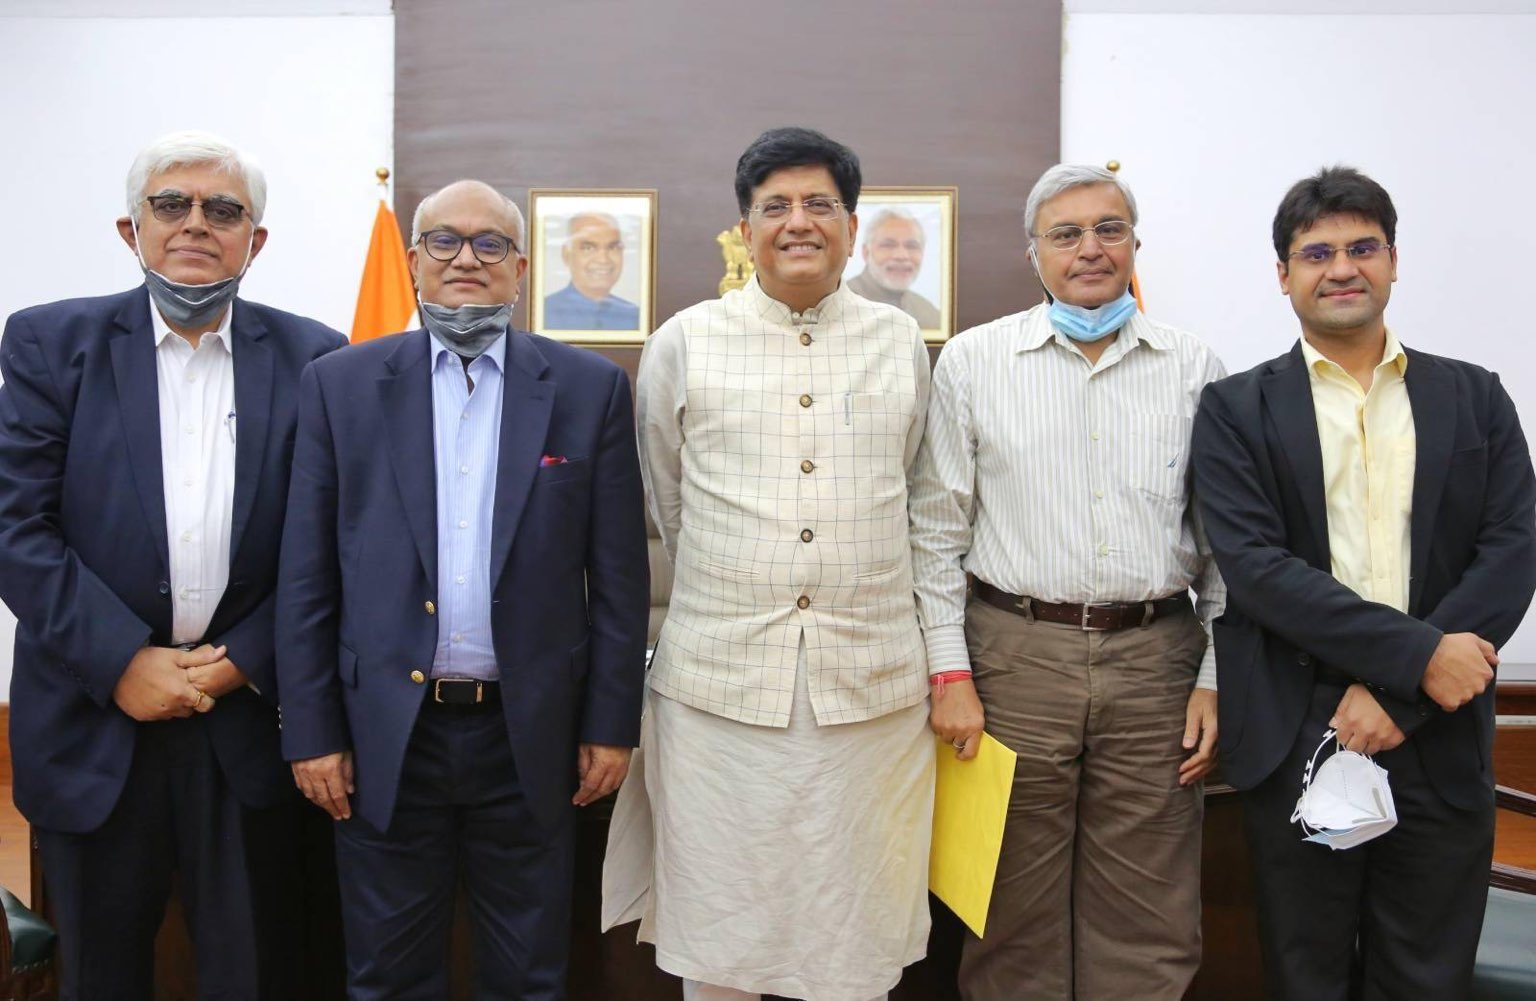 TEXPROCIL in a Meeting with Shri Piyush Goyal, Hon'ble Union Minister of Textiles, Commerce & Industry, Consumer Affairs and Food & Public Distribution on 29th July 2021 in New Delhi